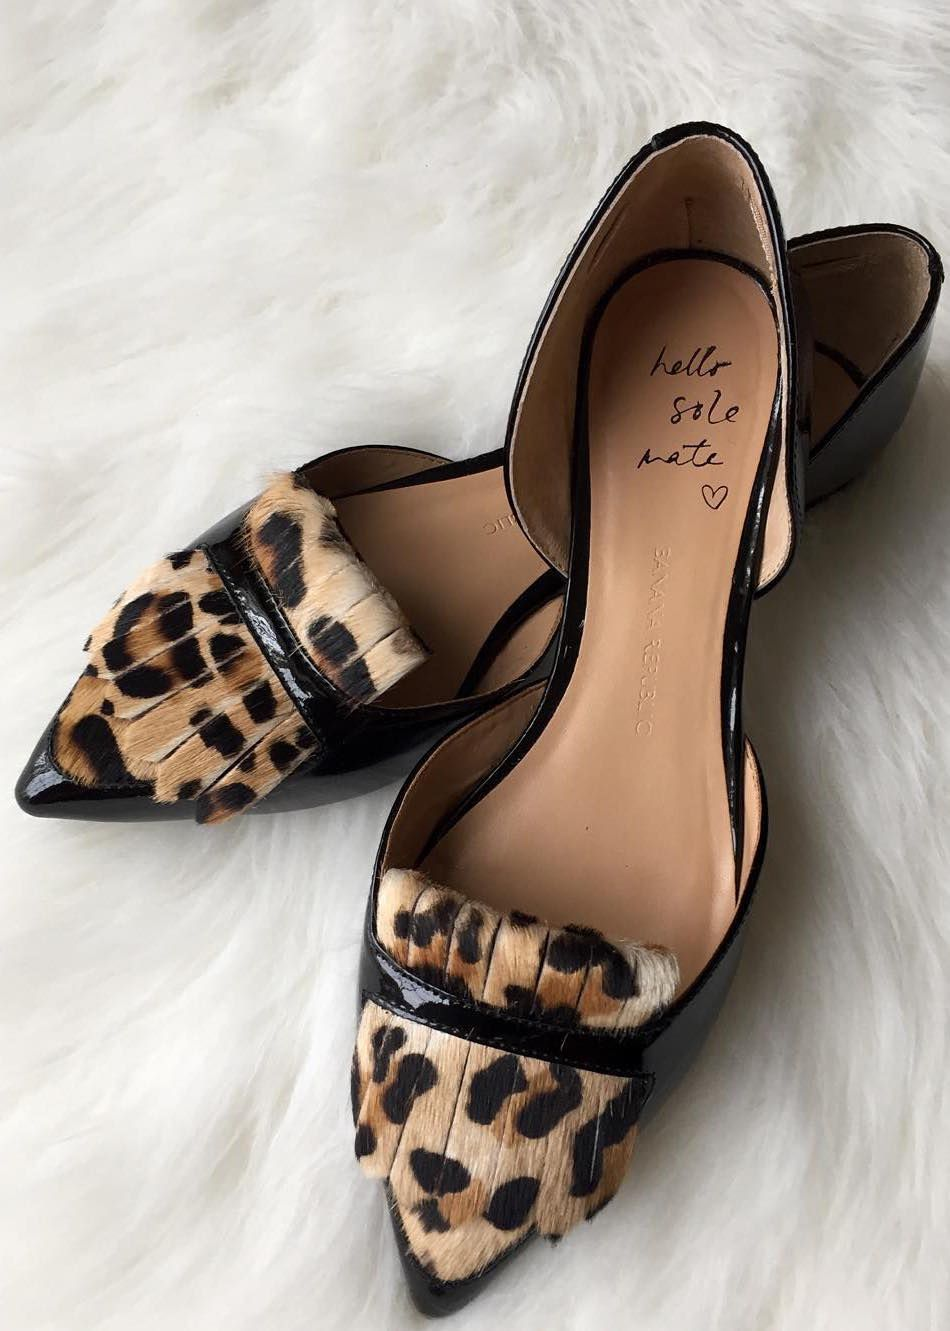 41b39ad43a60 Put some pep in your step with our leopard print oxford flats c o Kayla  Grace